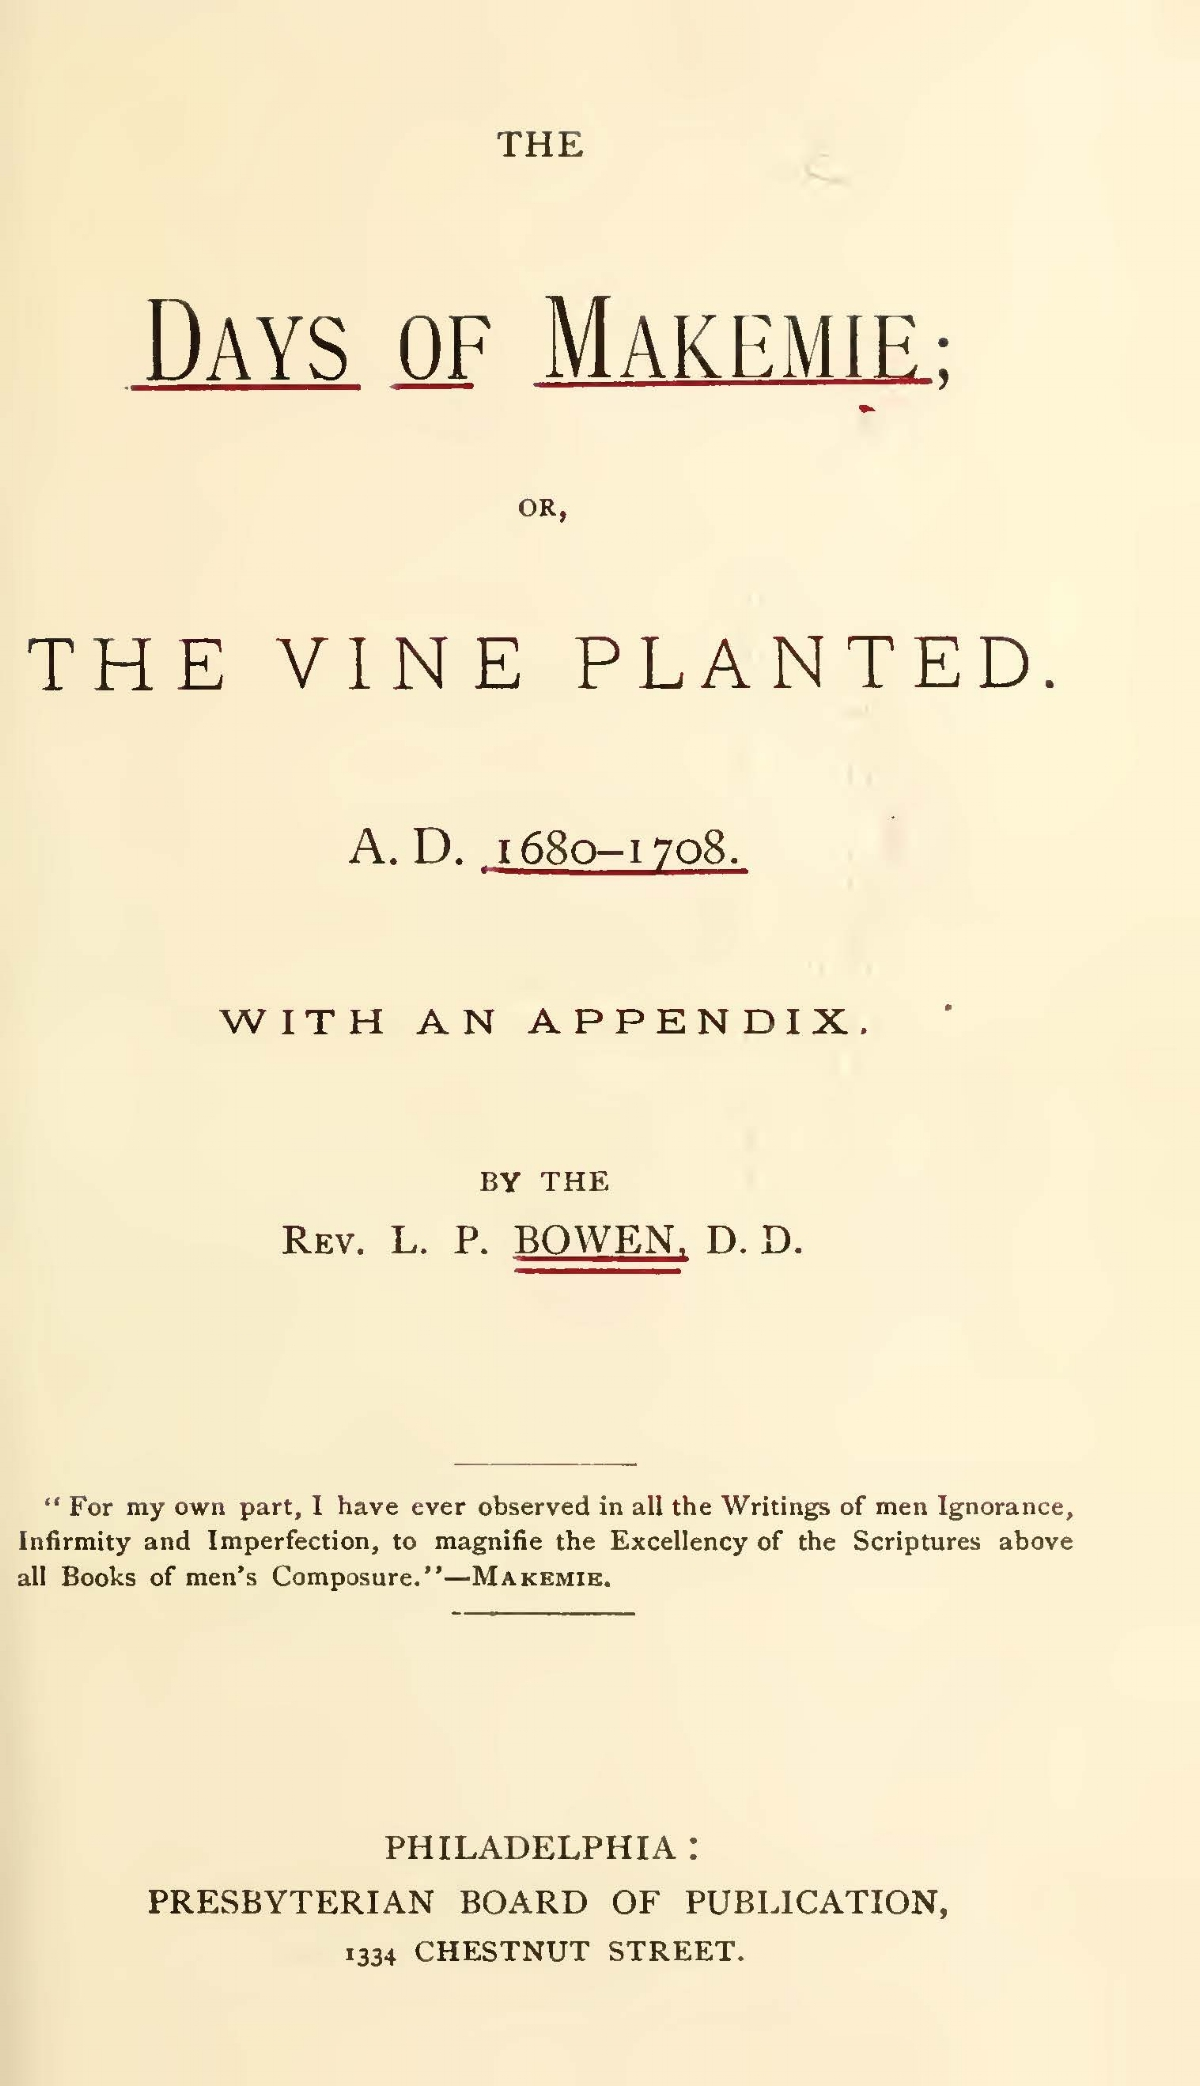 Bowen, Littleton Purnell, The Days of Makemie or The Vine Planted AD 1680-1708 Title Page.jpg